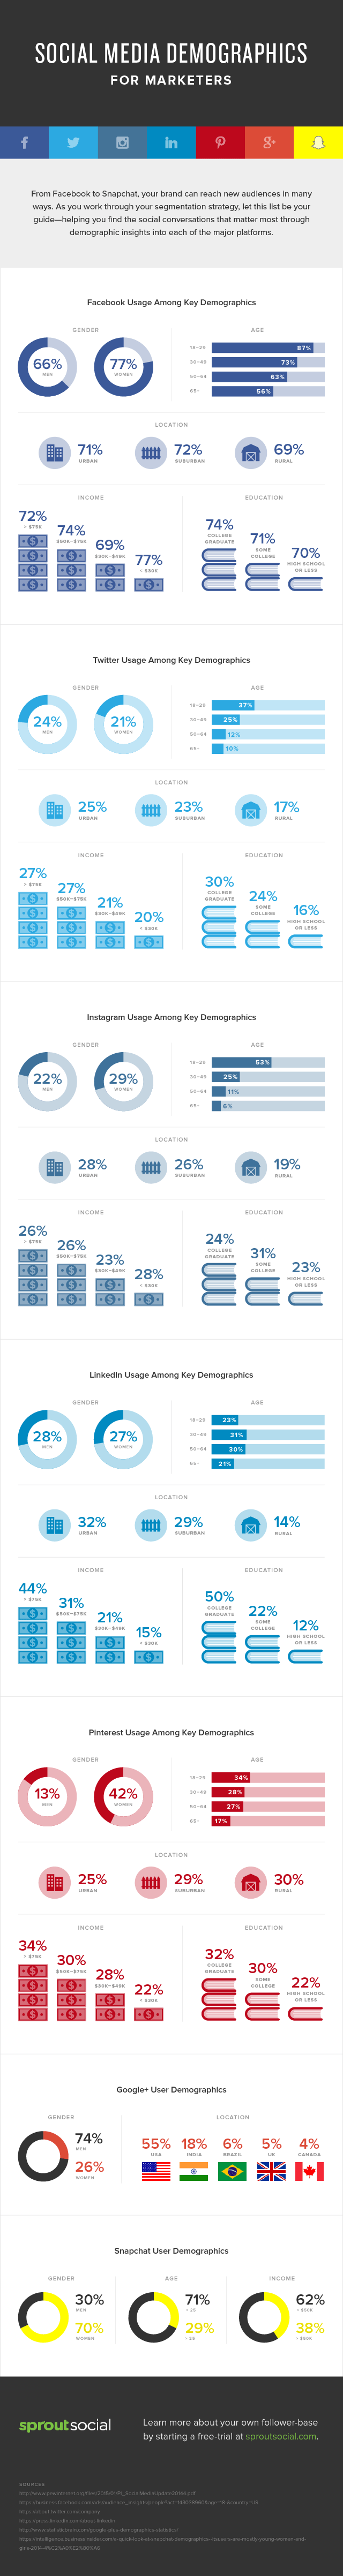 Social Media Site Demographics